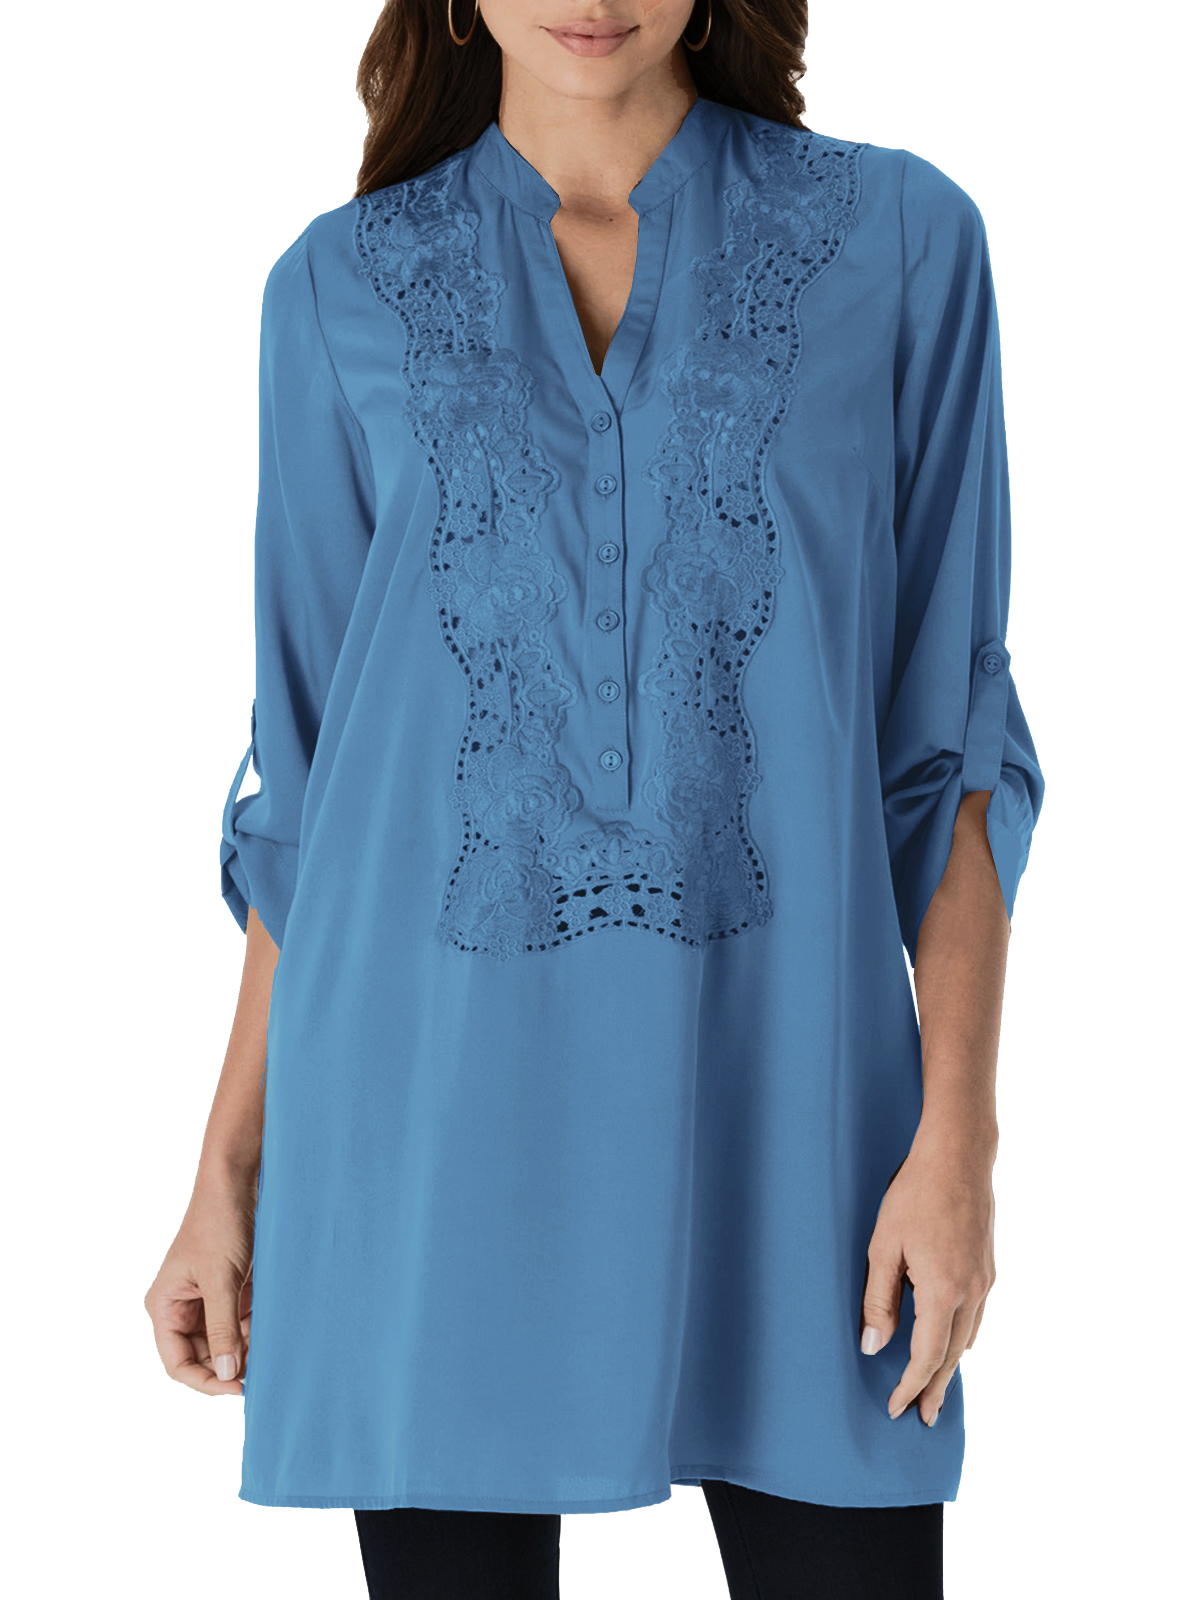 Denim 24/7 BLUE Rose Lace Tunic - Plus Size 14 to 24 (US 12w to 22w)